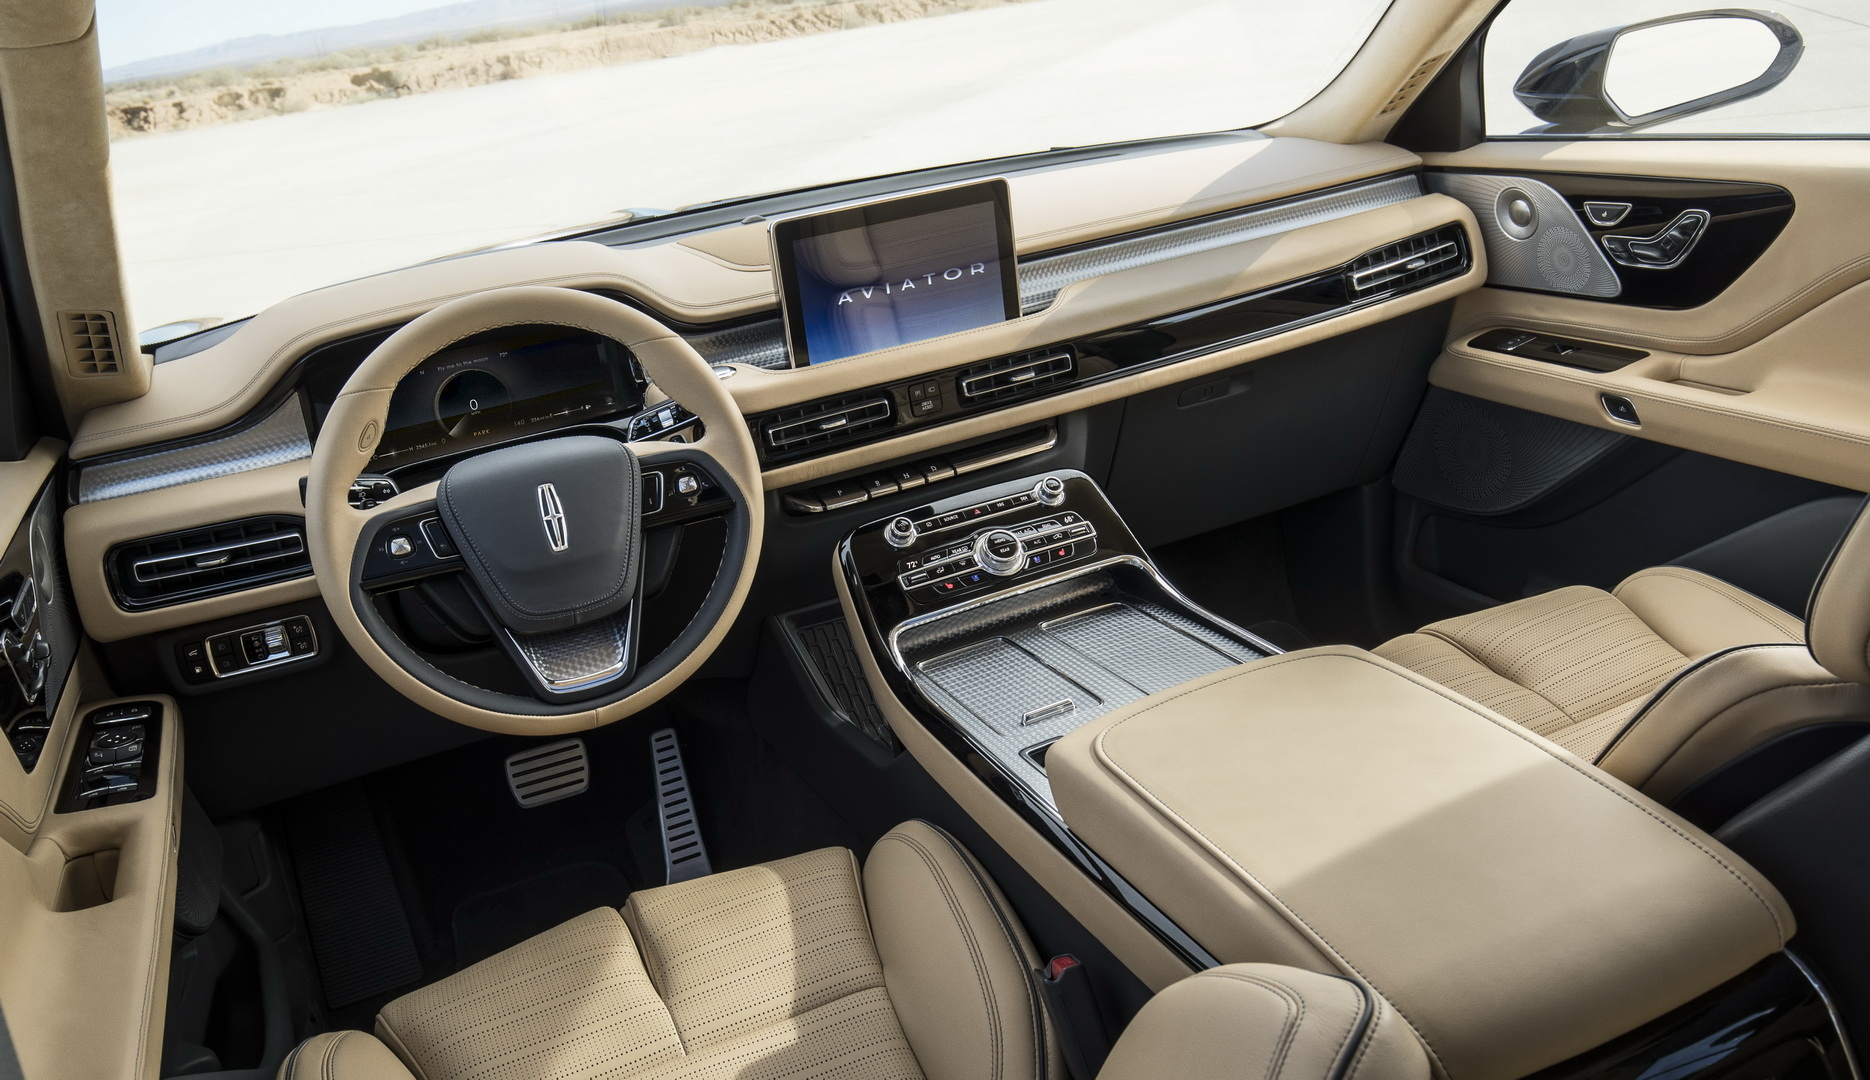 Can The 2020 Lincoln Aviator Teach Any Luxury Lessons To The German Establishment?